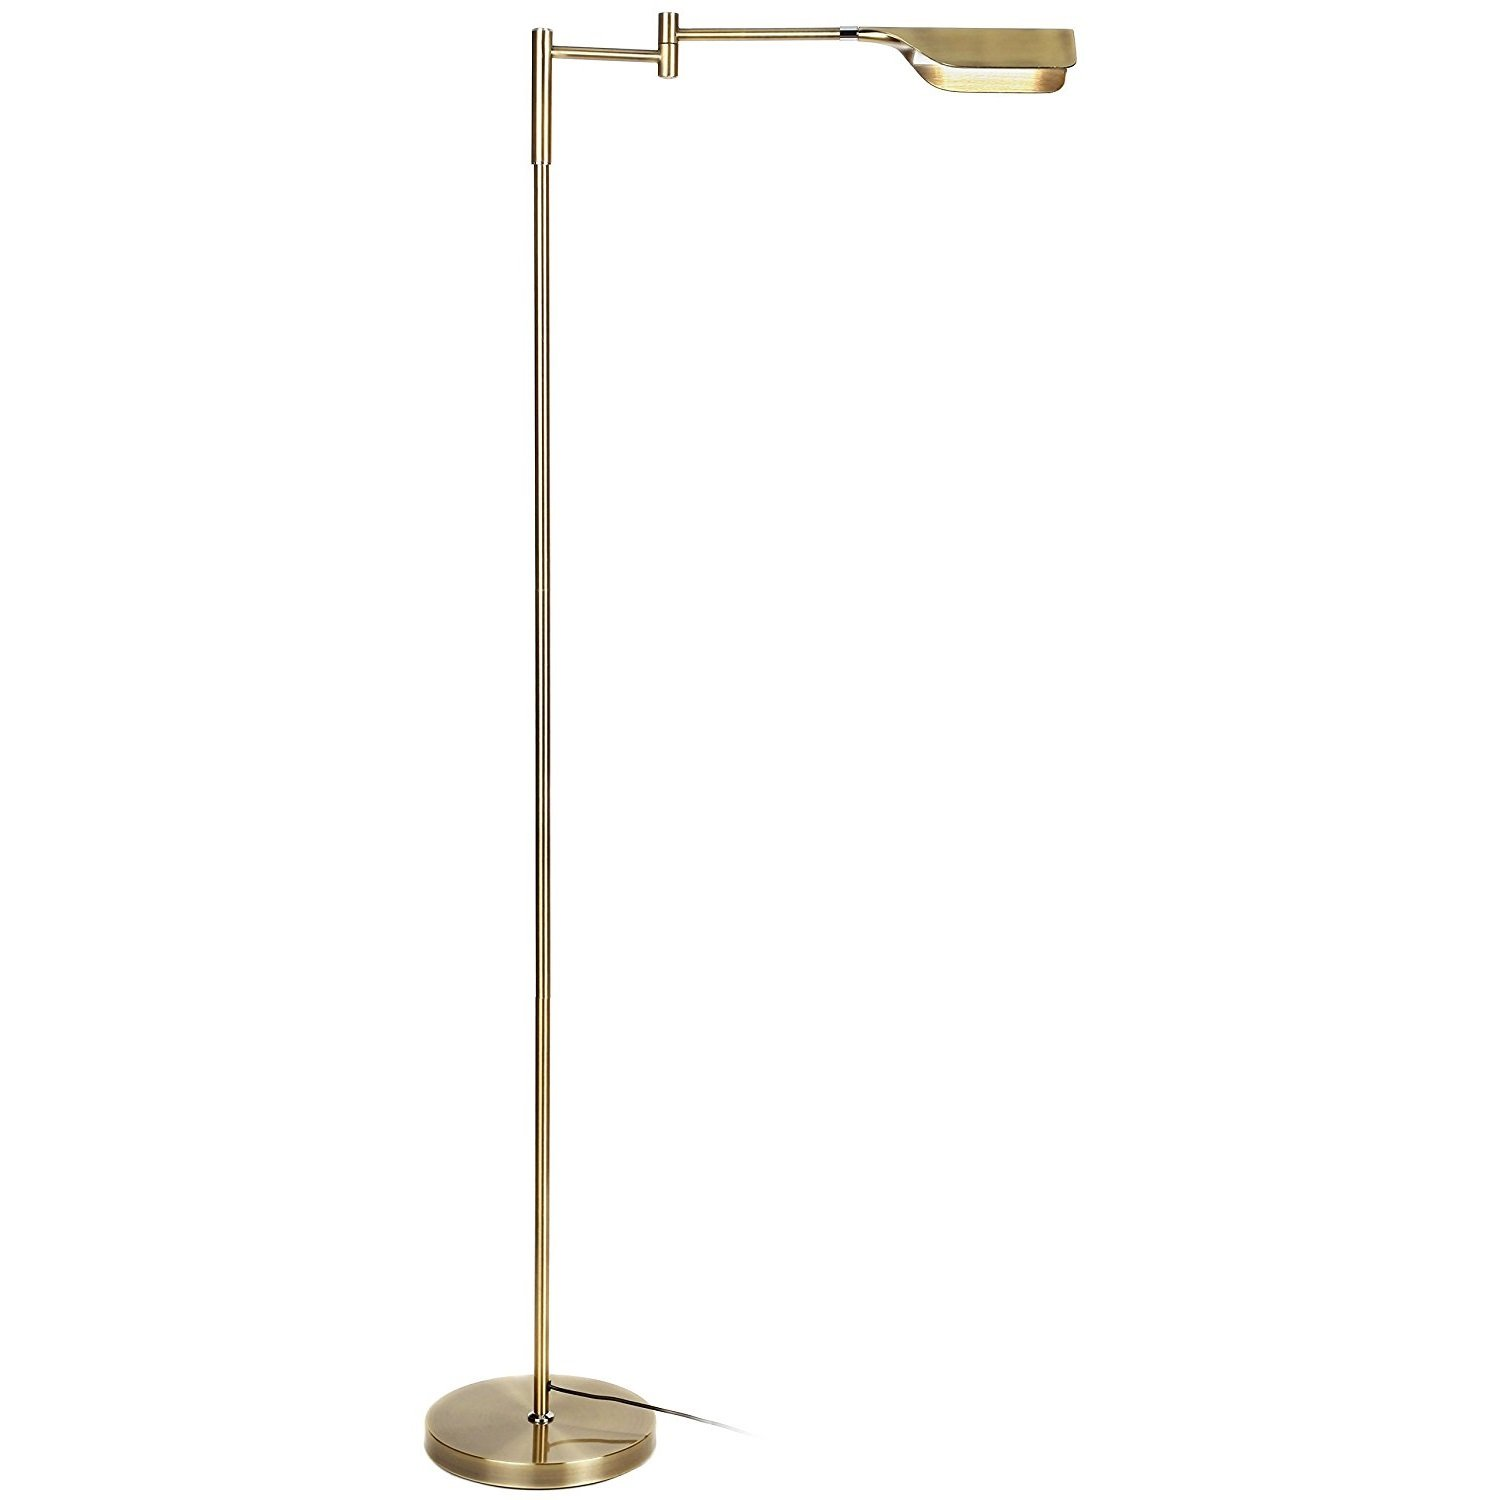 extra stand overarching lamp studio pretty tall globe crystal near decoration bronze reading palm skinny floor brass me touch tree torchiere pharmacy lamps with best table lanterns light